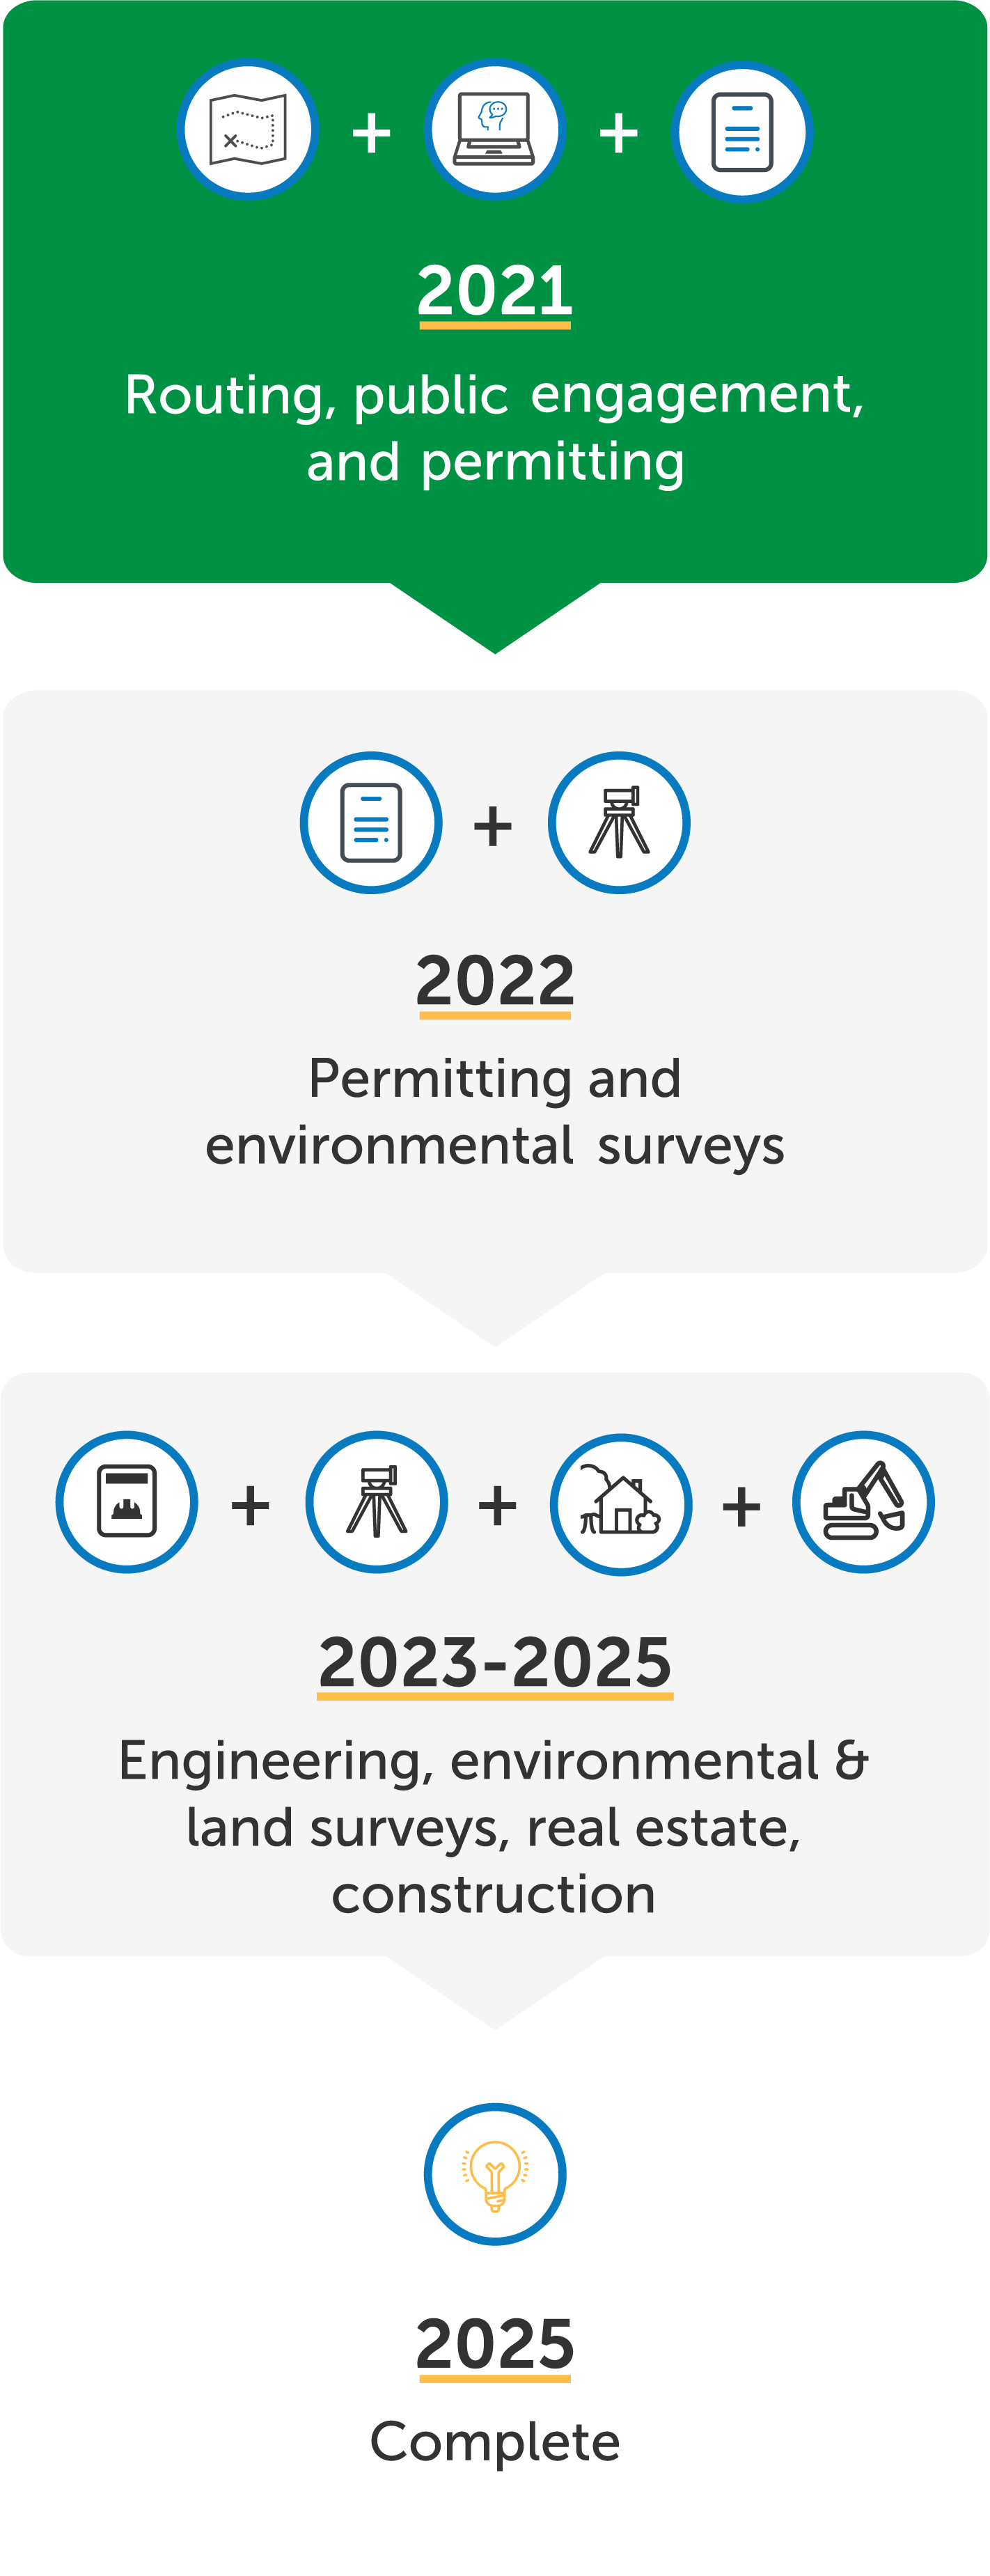 2021: Routing, public engagement, and permitting; 2022: Permitting, engineering, surveys, and real estate; 2023-2025: Construction; 2025: Complete